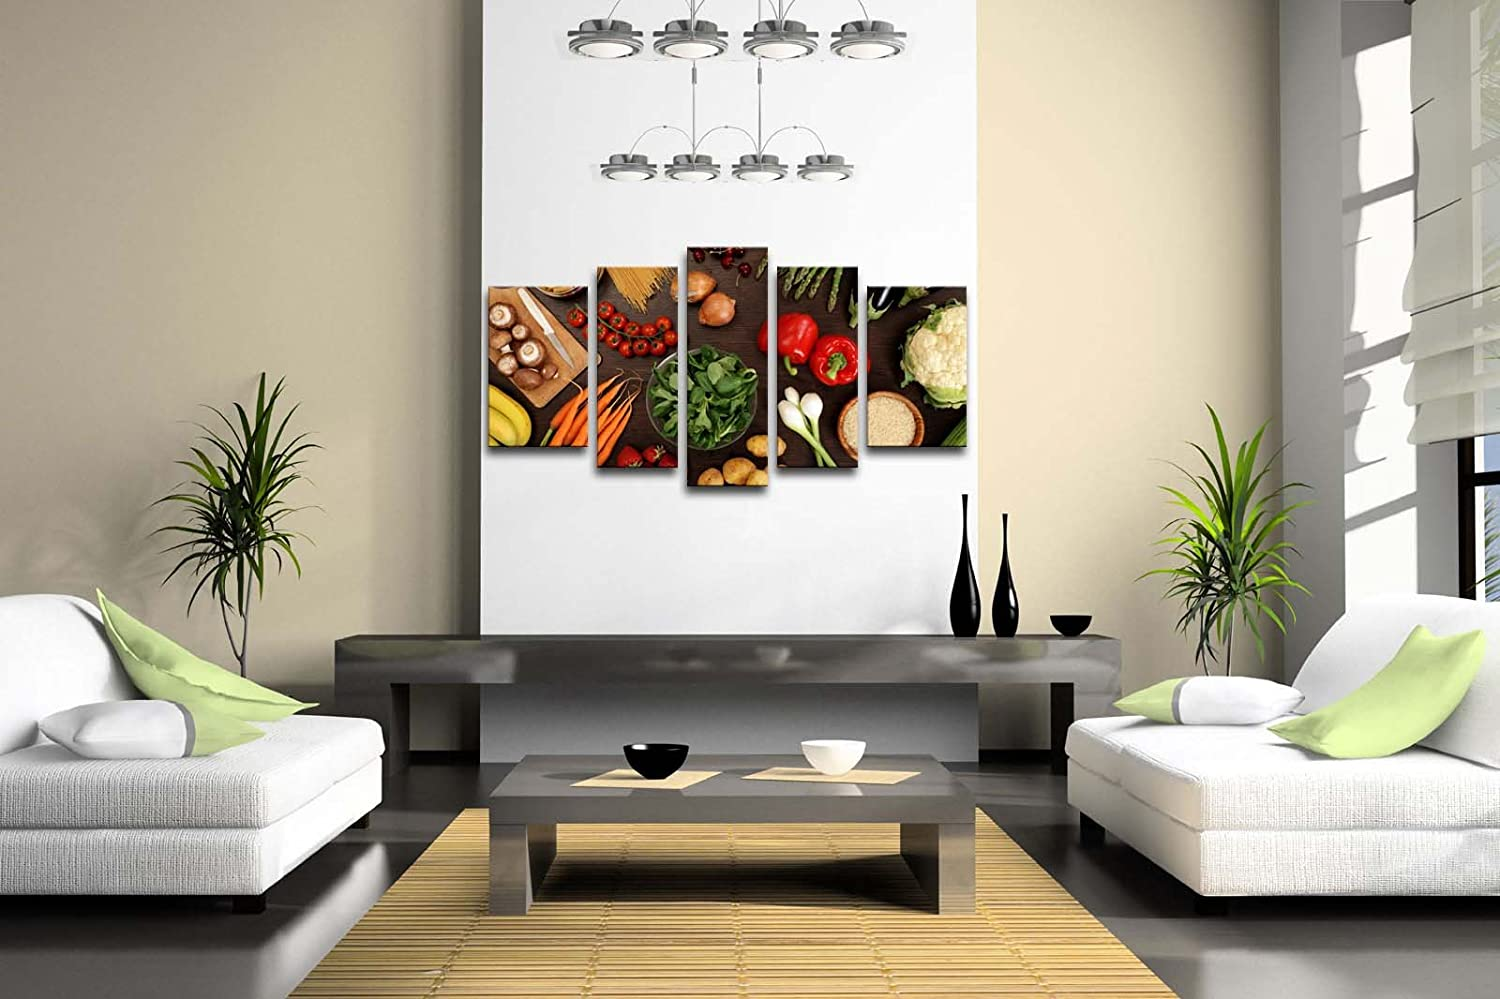 Amazon.com: 5 Panel Wall Art Fresh Look Color Healthy Eating Of A ...